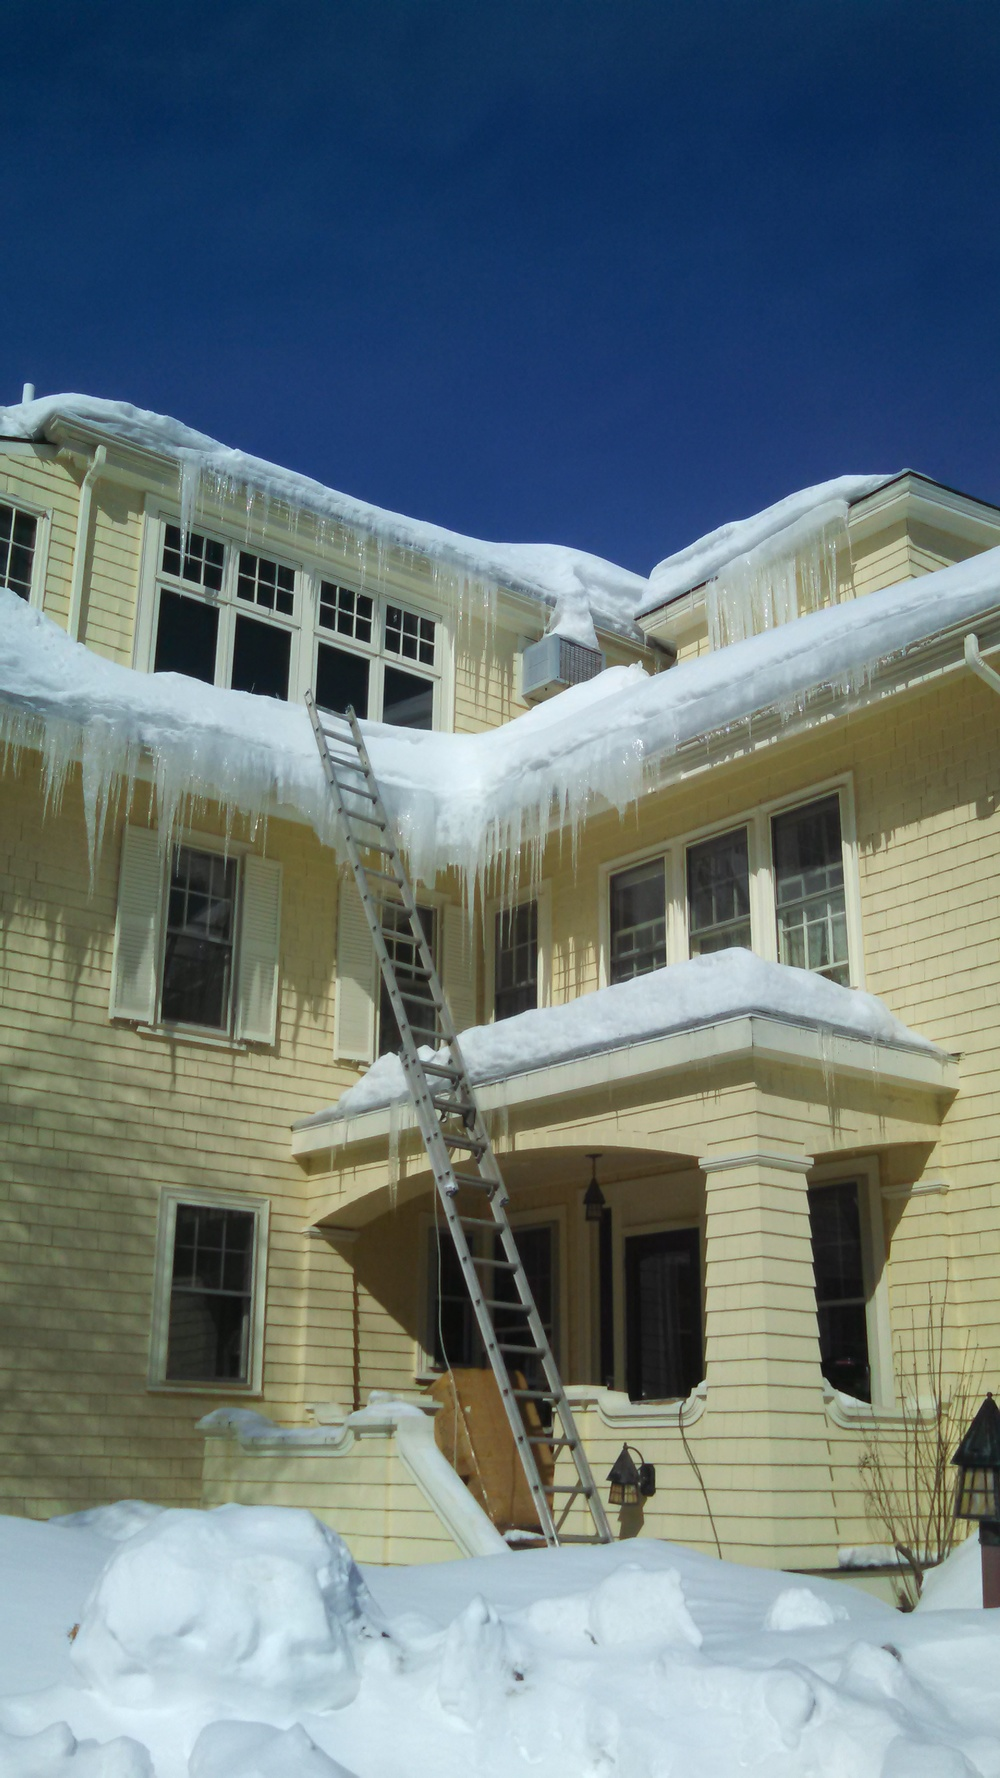 The larger the overhang of the roof, the more time you have to react. These icicles look problematic but actually they're not doing any major harm to the roof.